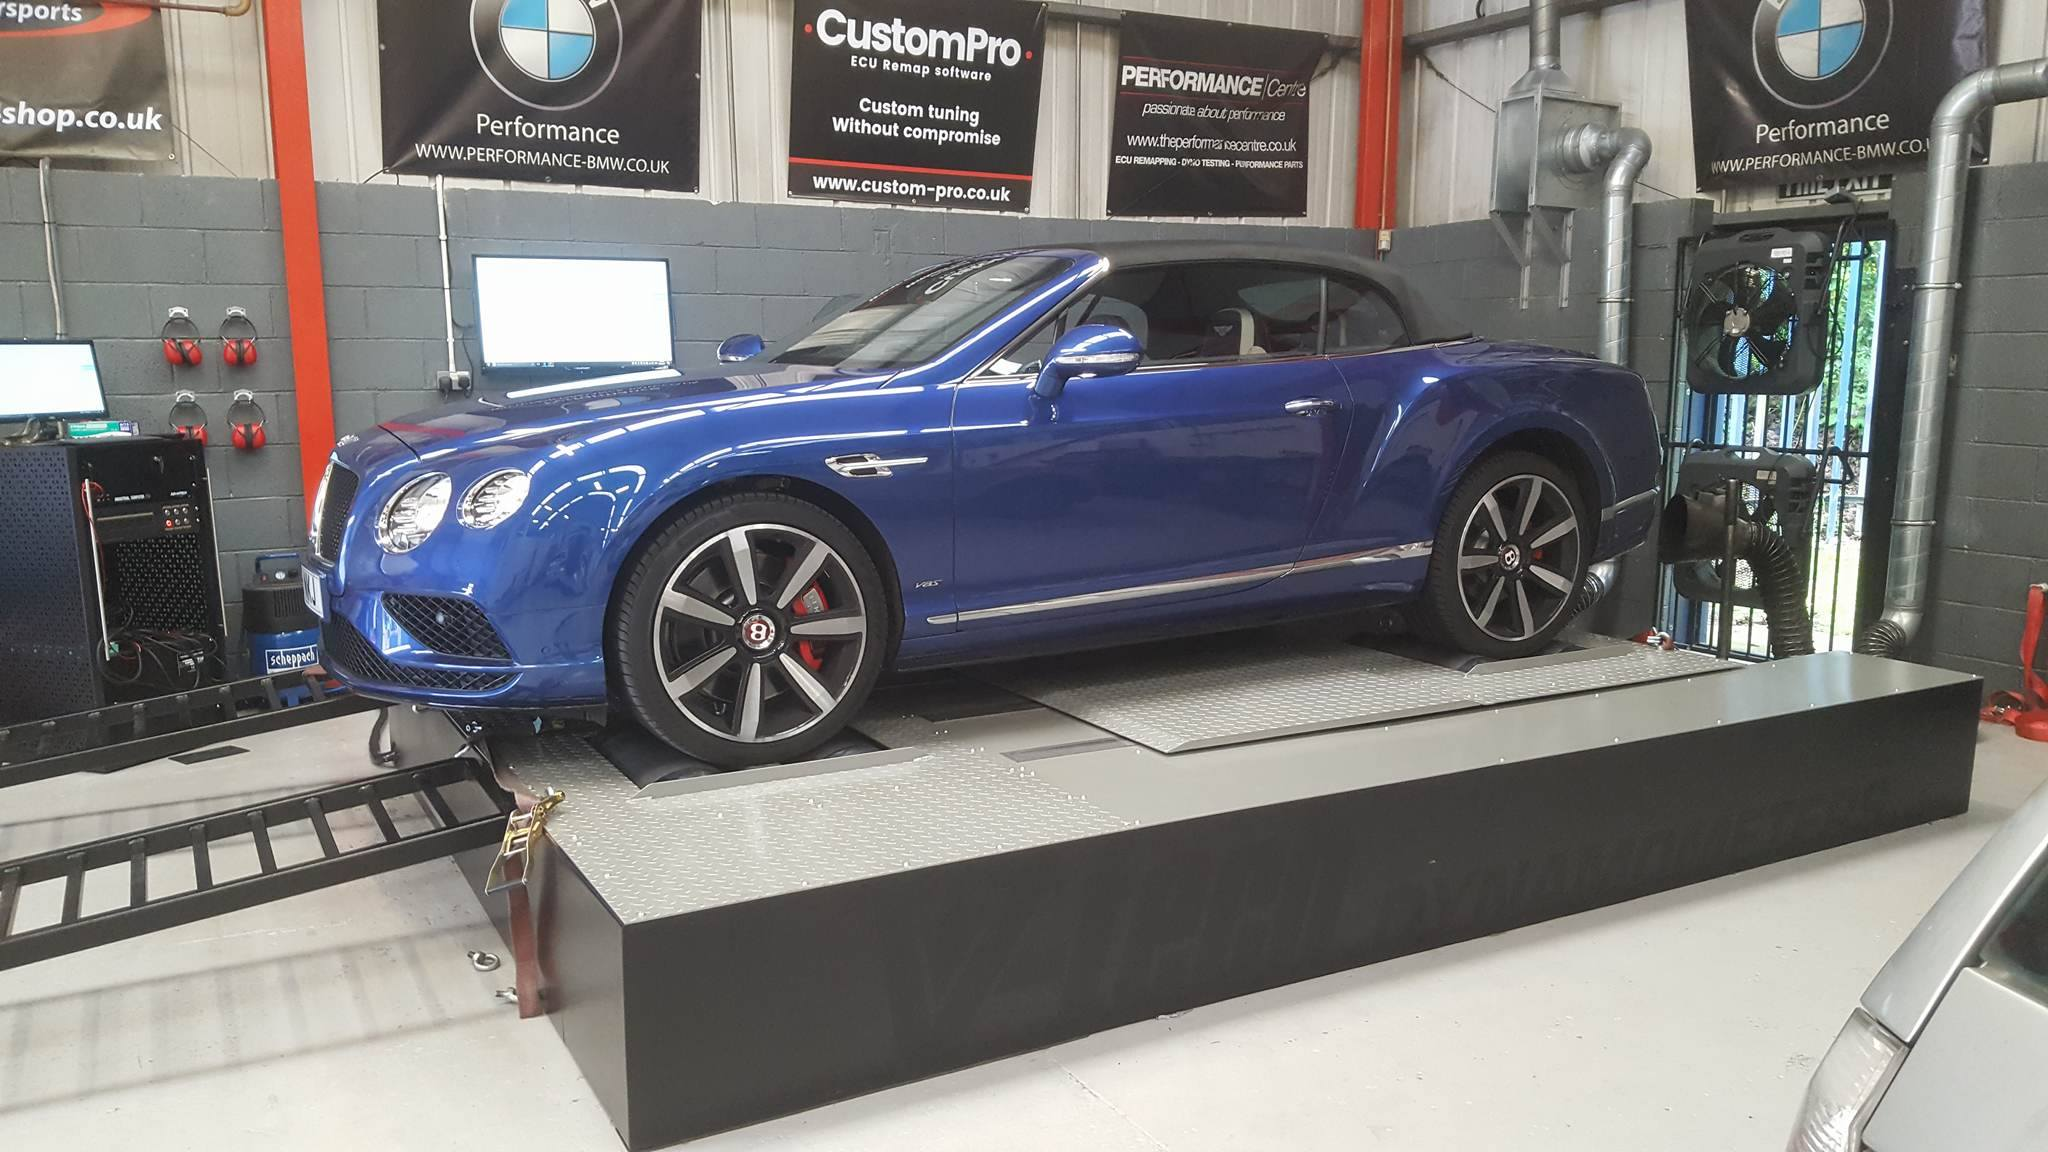 Bentley Continental GTS - CustomPro remap + Larini resonator delete